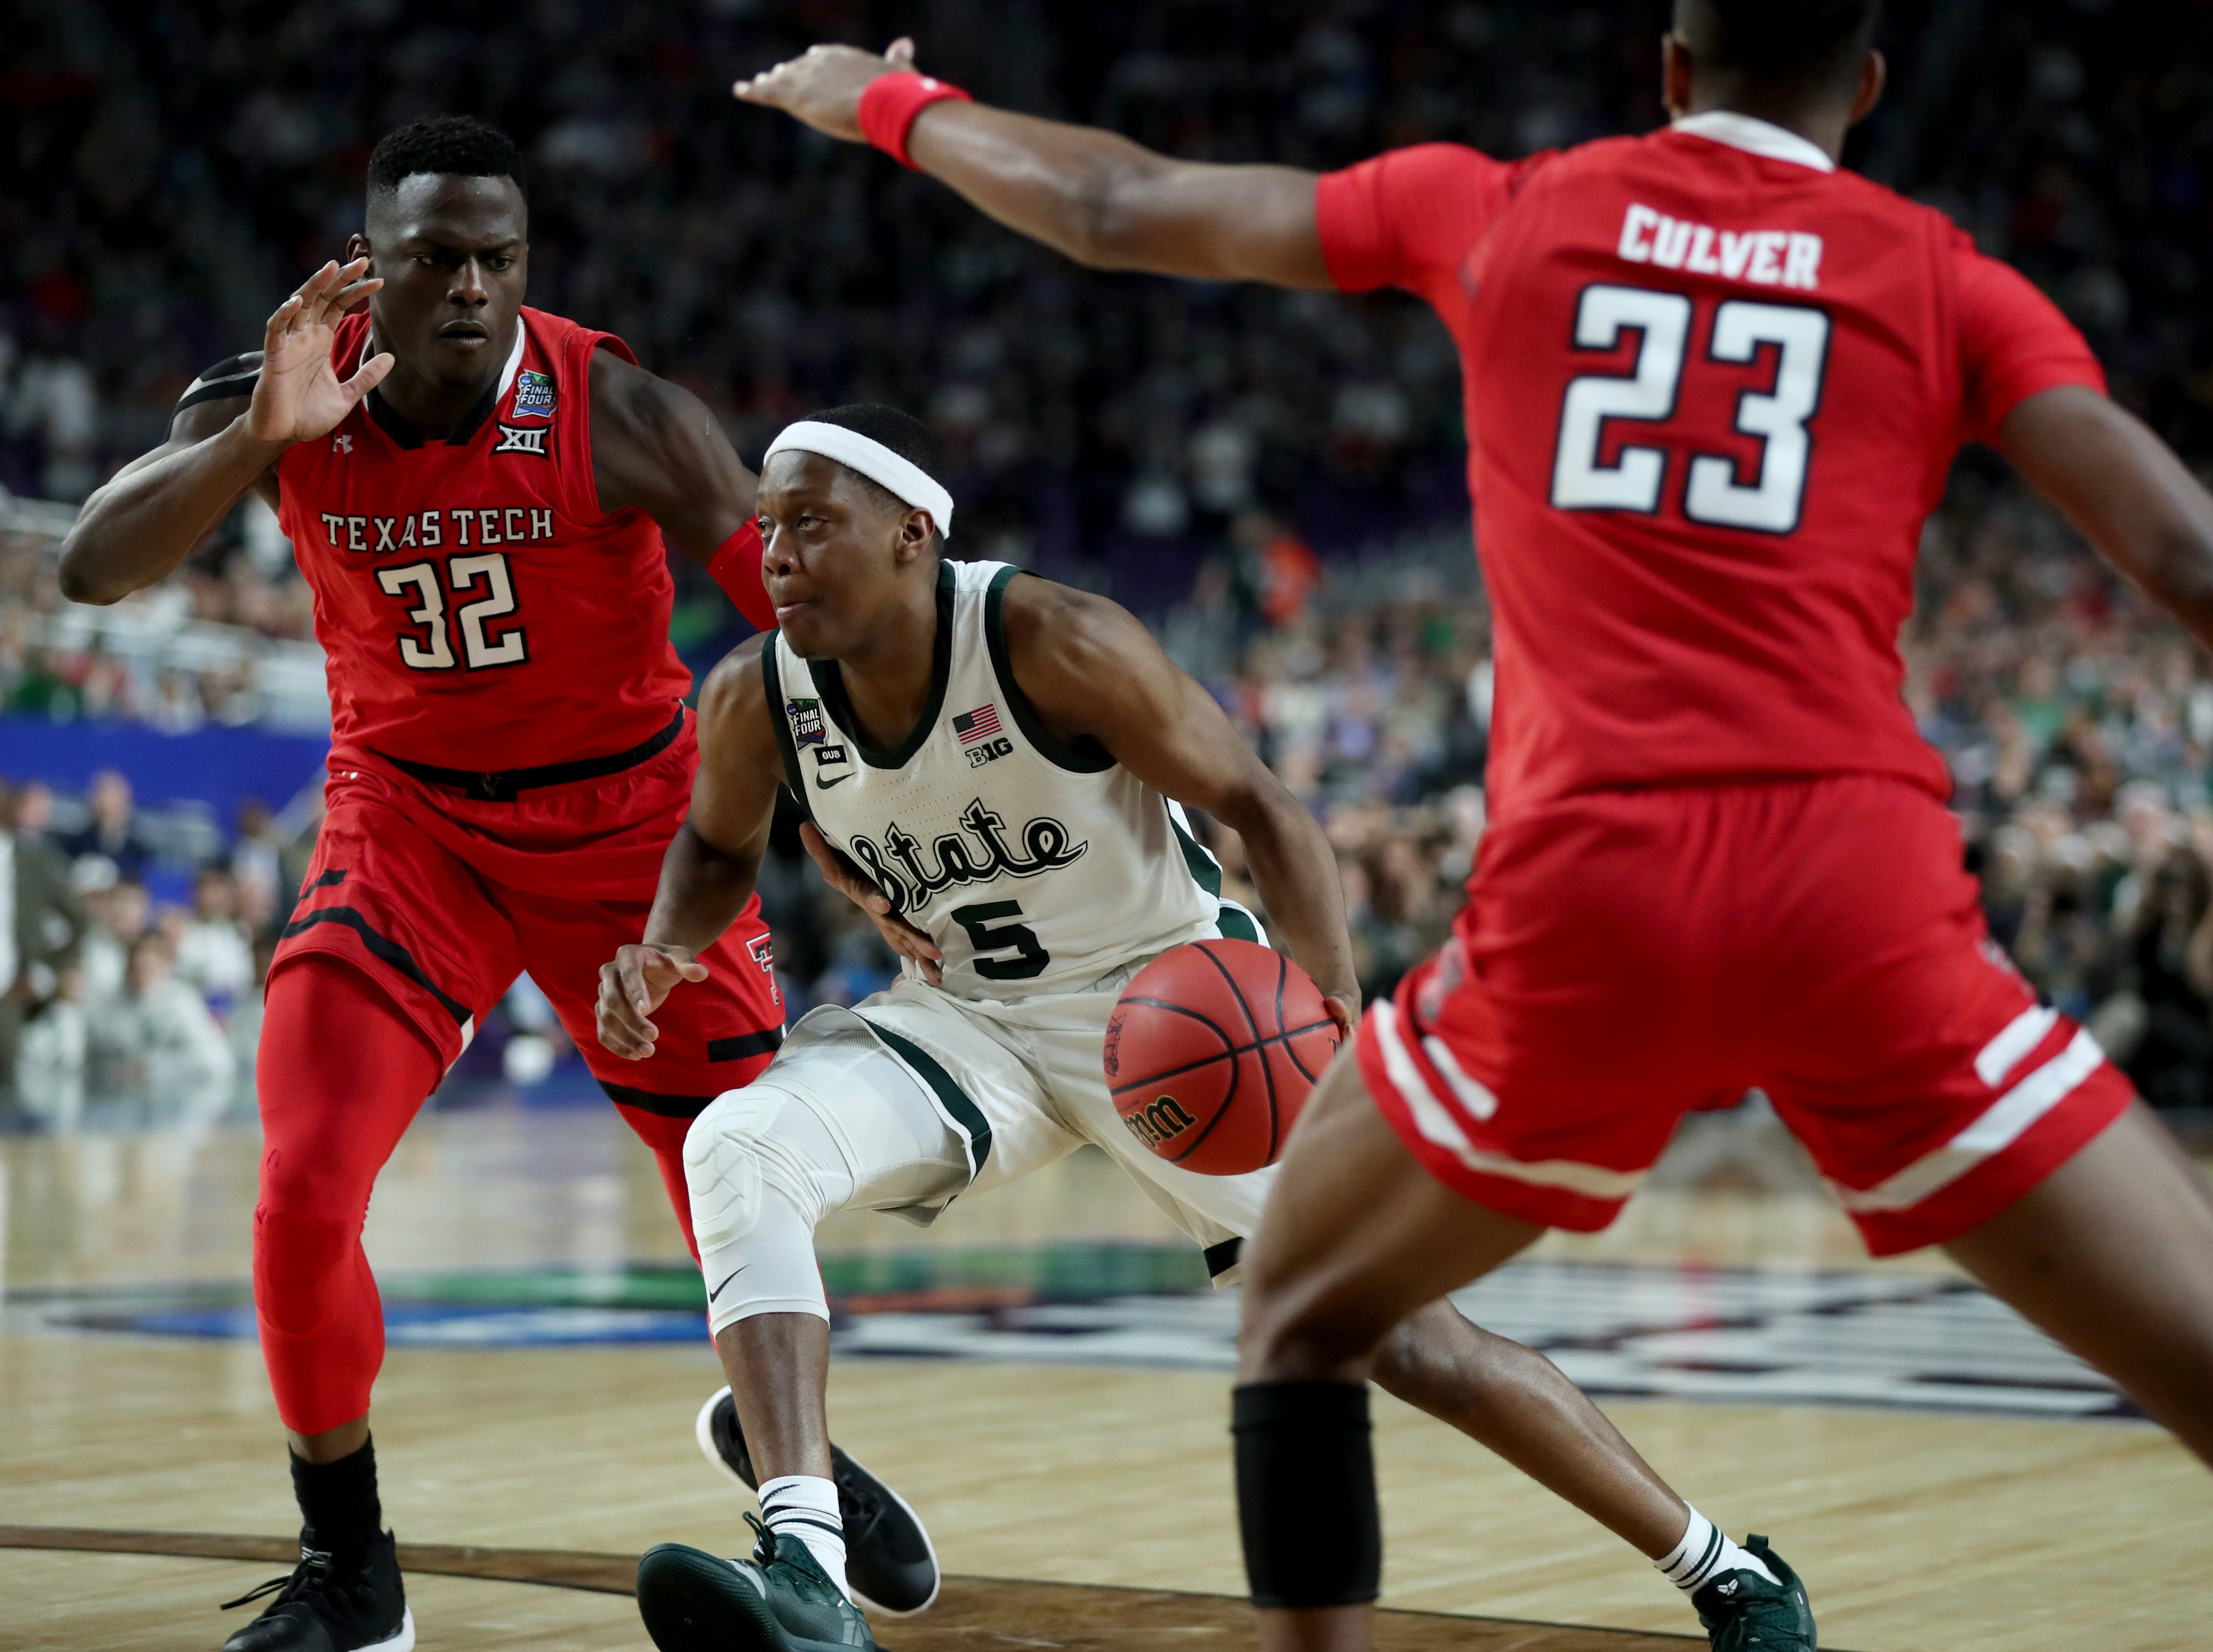 Michigan State guard Cassius Winston (5) moves the ball around forward Josh Mballa (32) in the first half of their Final Four game at U.S. Bank Stadium in Minneapolis, Minnesota on Saturday, April 06, 2019.